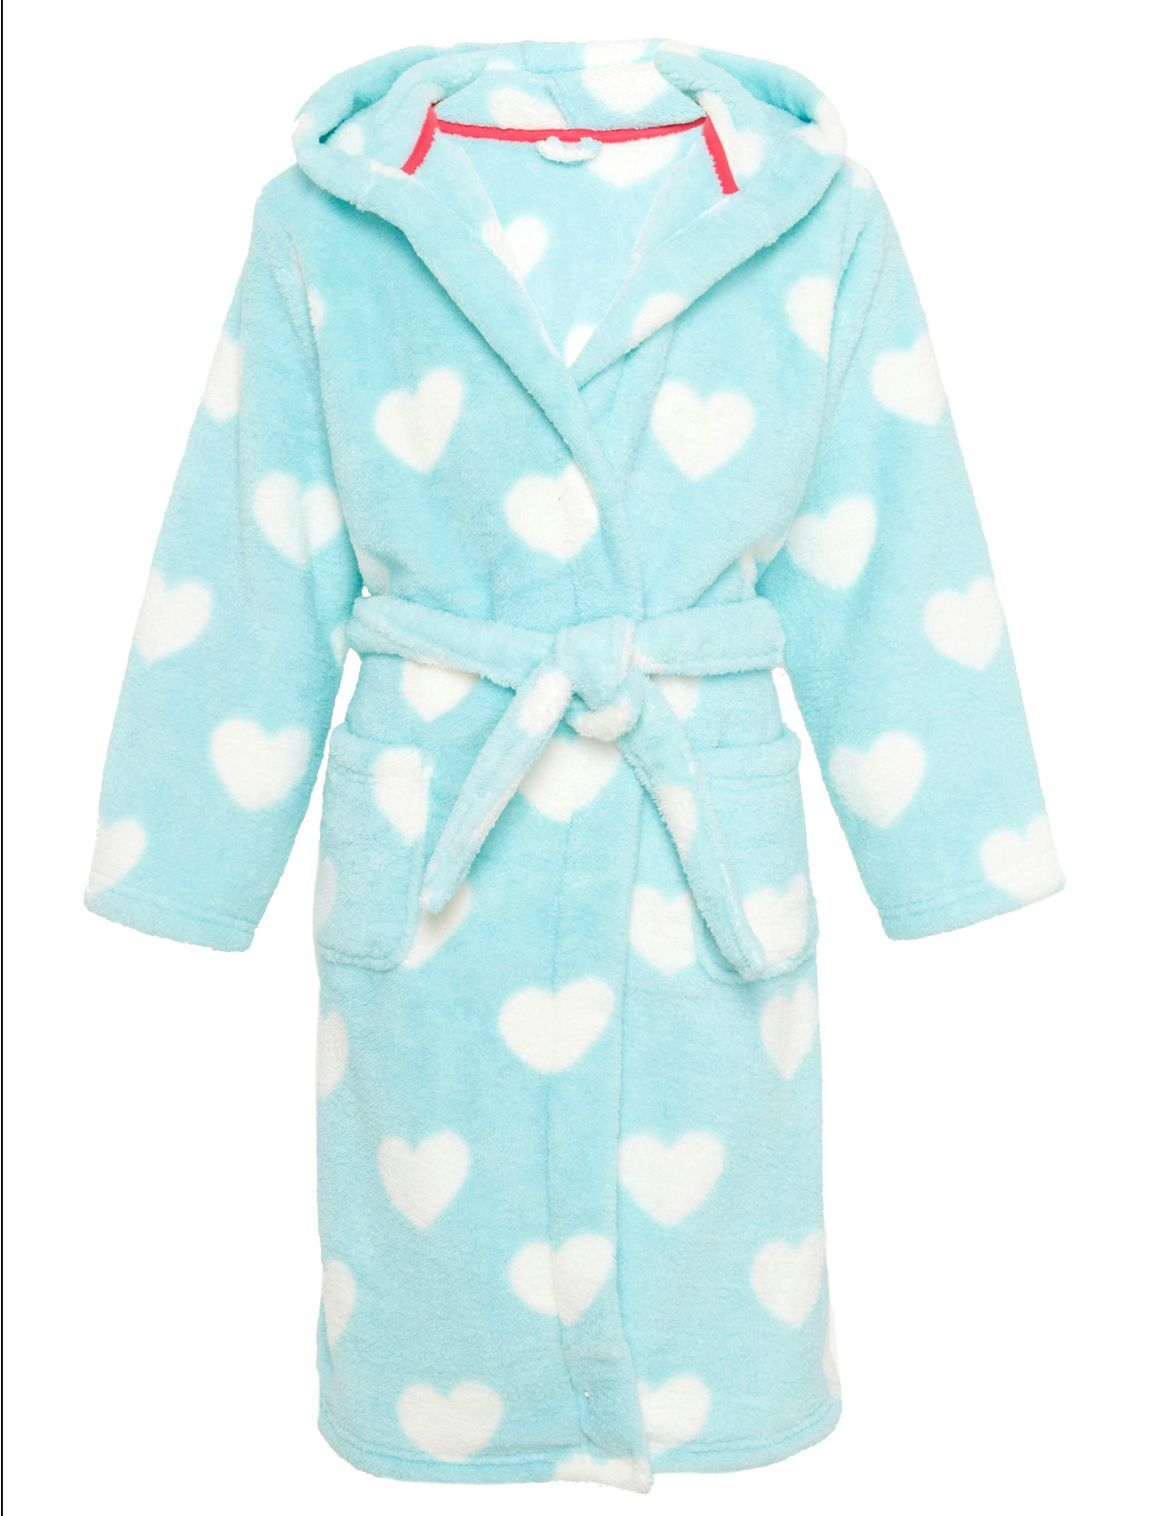 Tuquoise girls duster/bathrobe with white hearts from Marks and Spencer